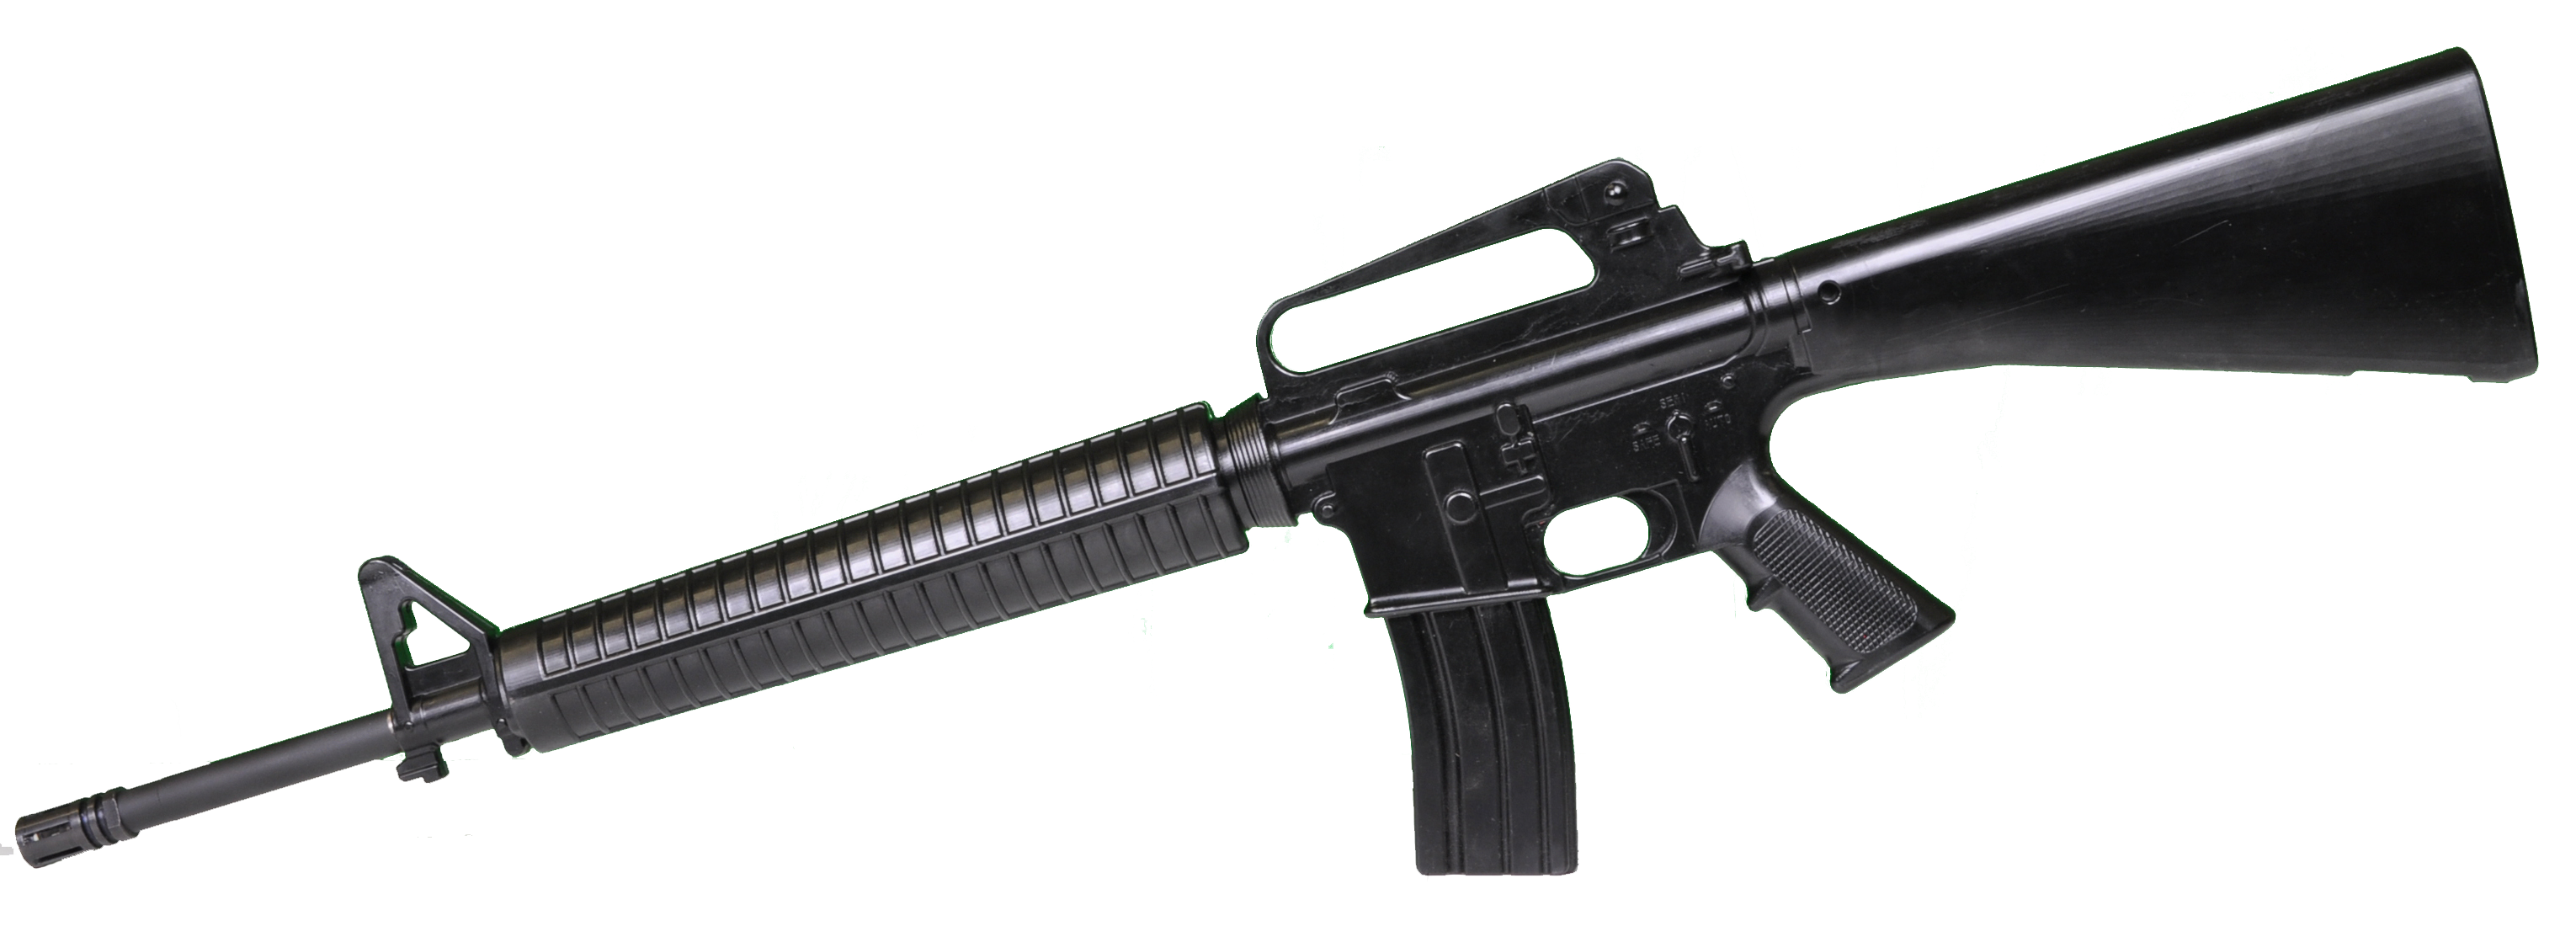 Shotgun clipart hammerless Rifle rifle M16 USA USA